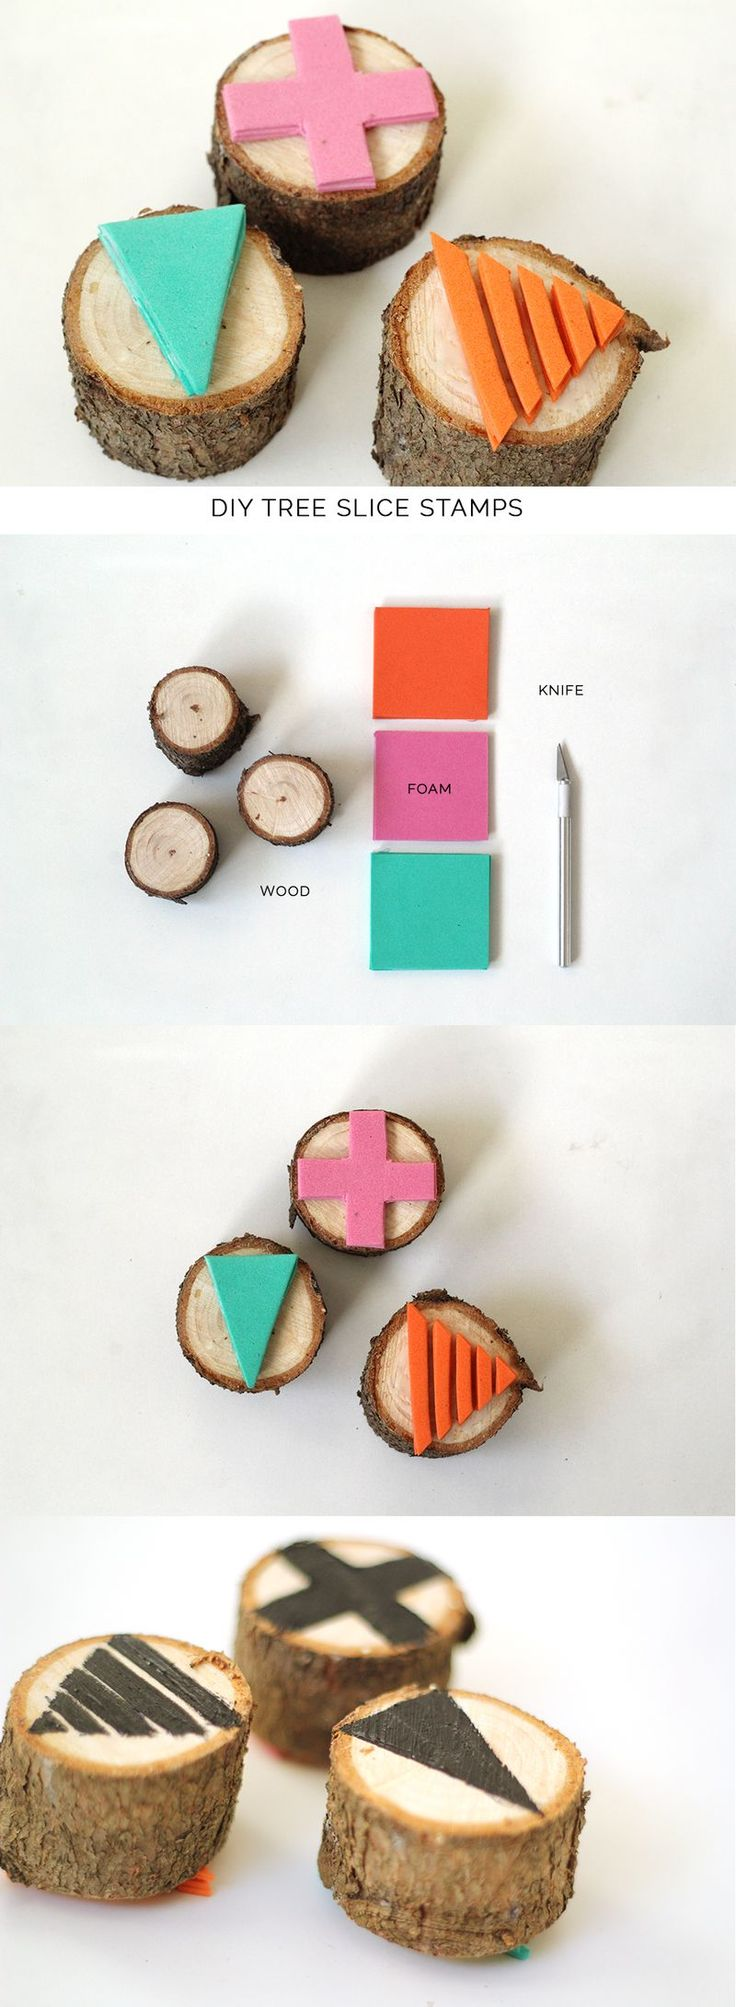 DIY tree branch stamps